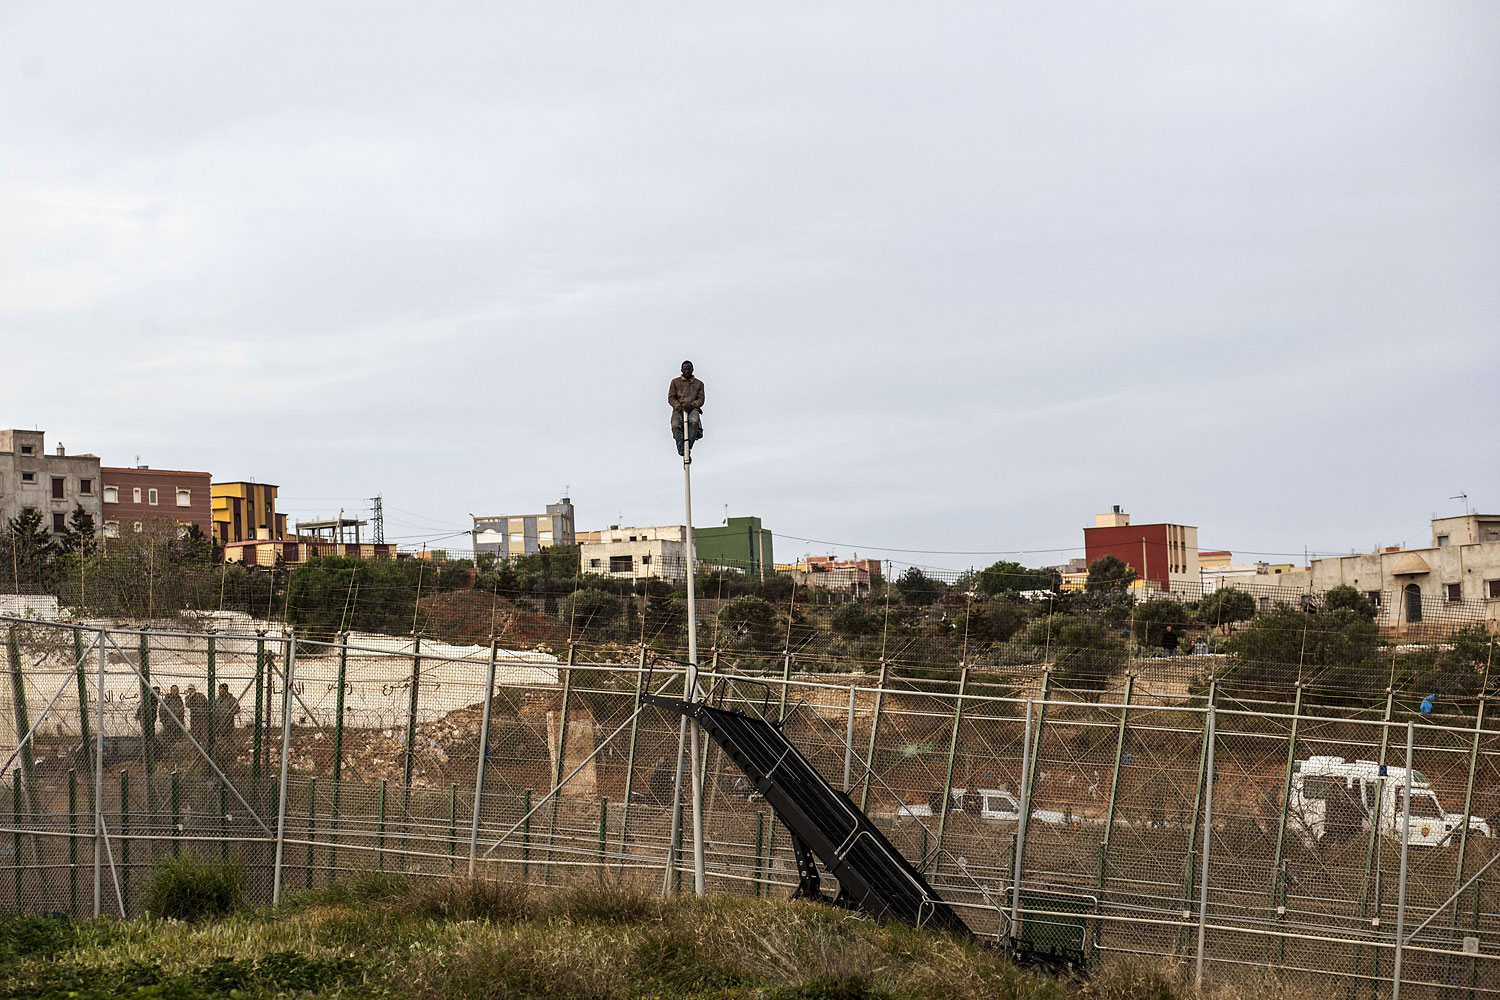 A would-be immigrant waits sitted on a mast on the other side of fences near Beni Enza, into the north African Spanish enclave of Melilla on March 28, 2014.